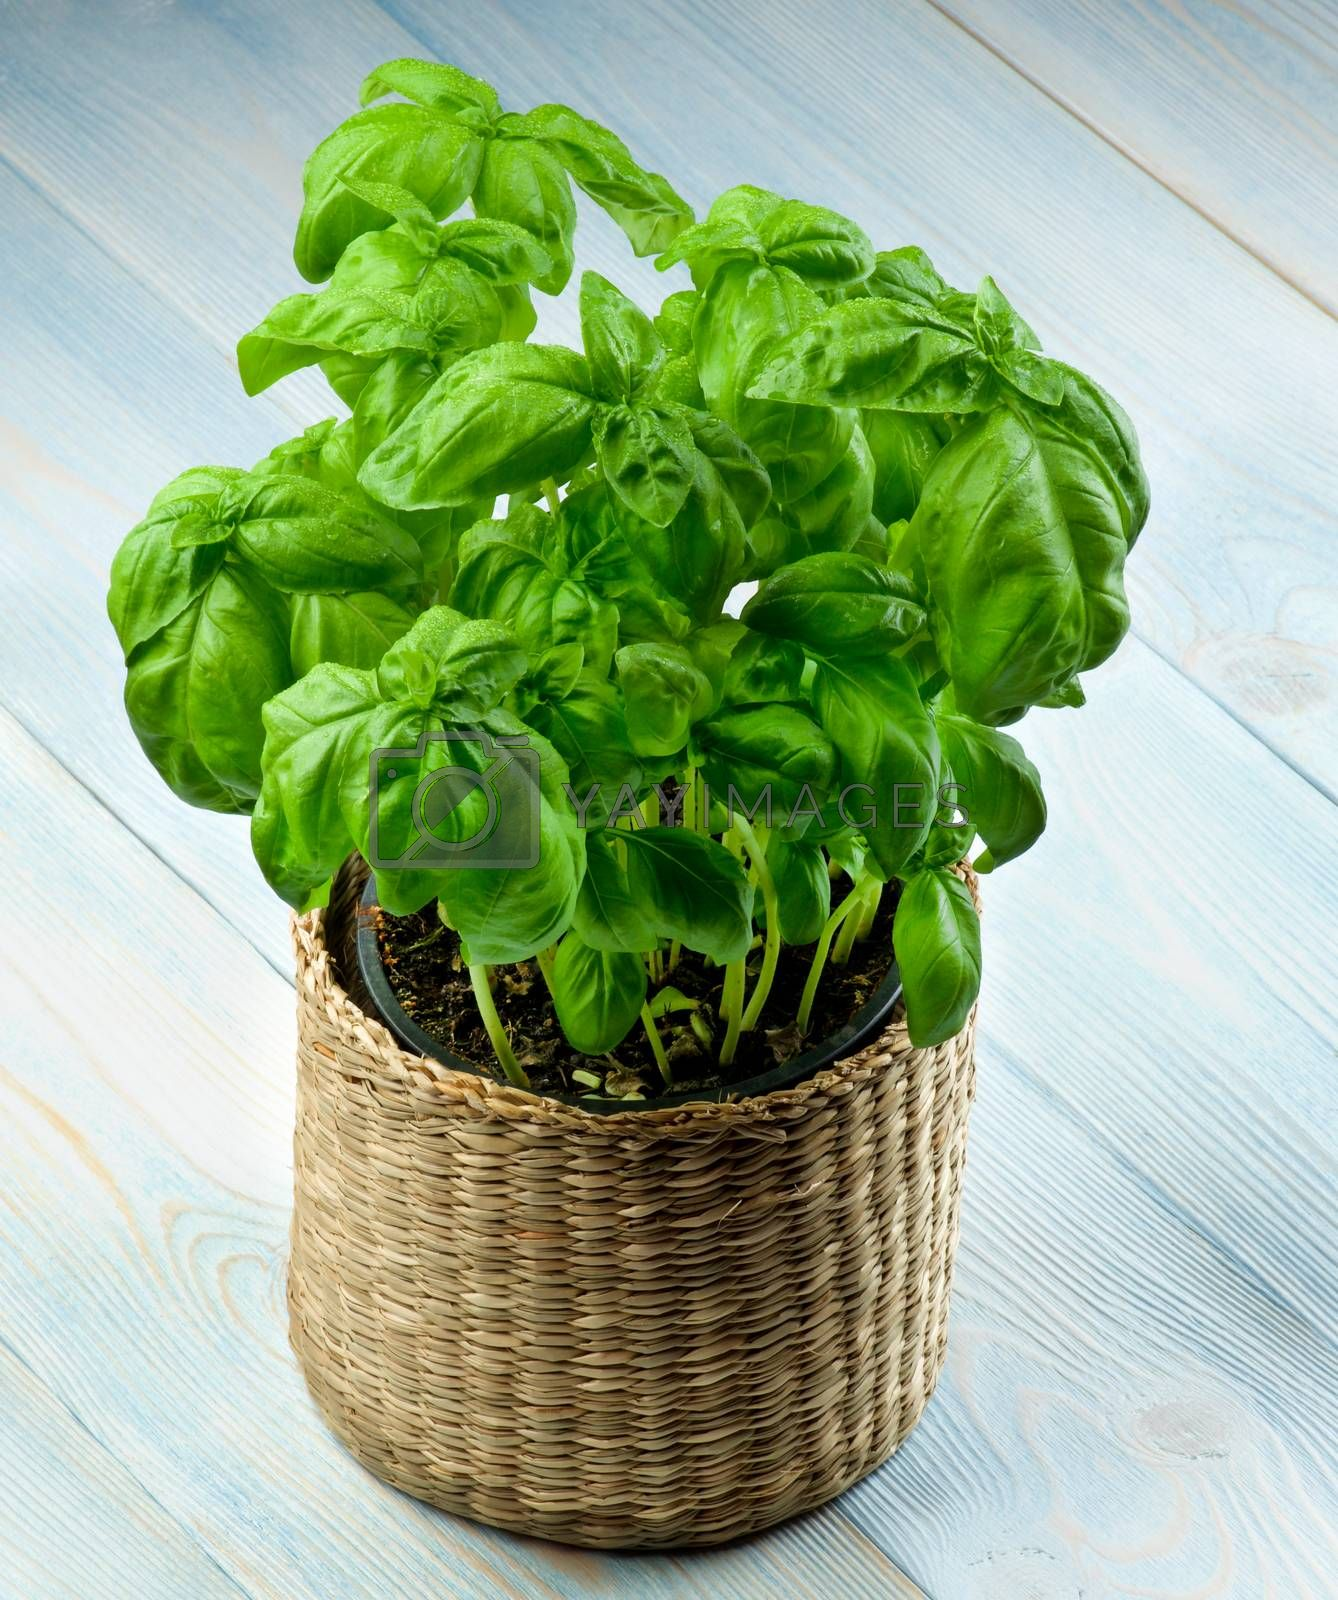 Lush Foliage Fresh Green Basil with Water Drops in Wicker Flower Pot closeup on Wooden background